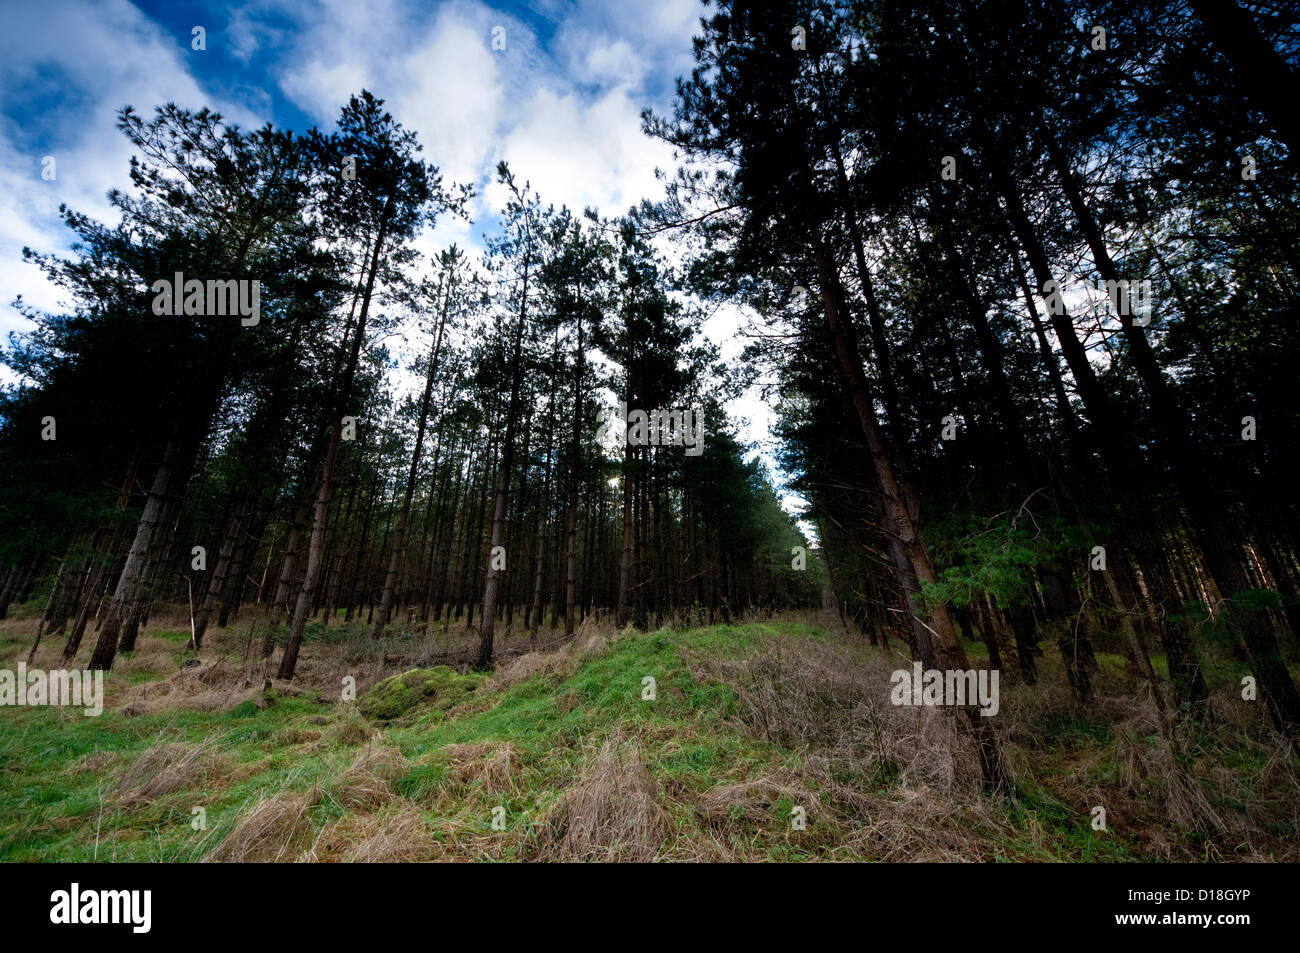 Scots Pine trees Thetford forest forestry  commission - Stock Image